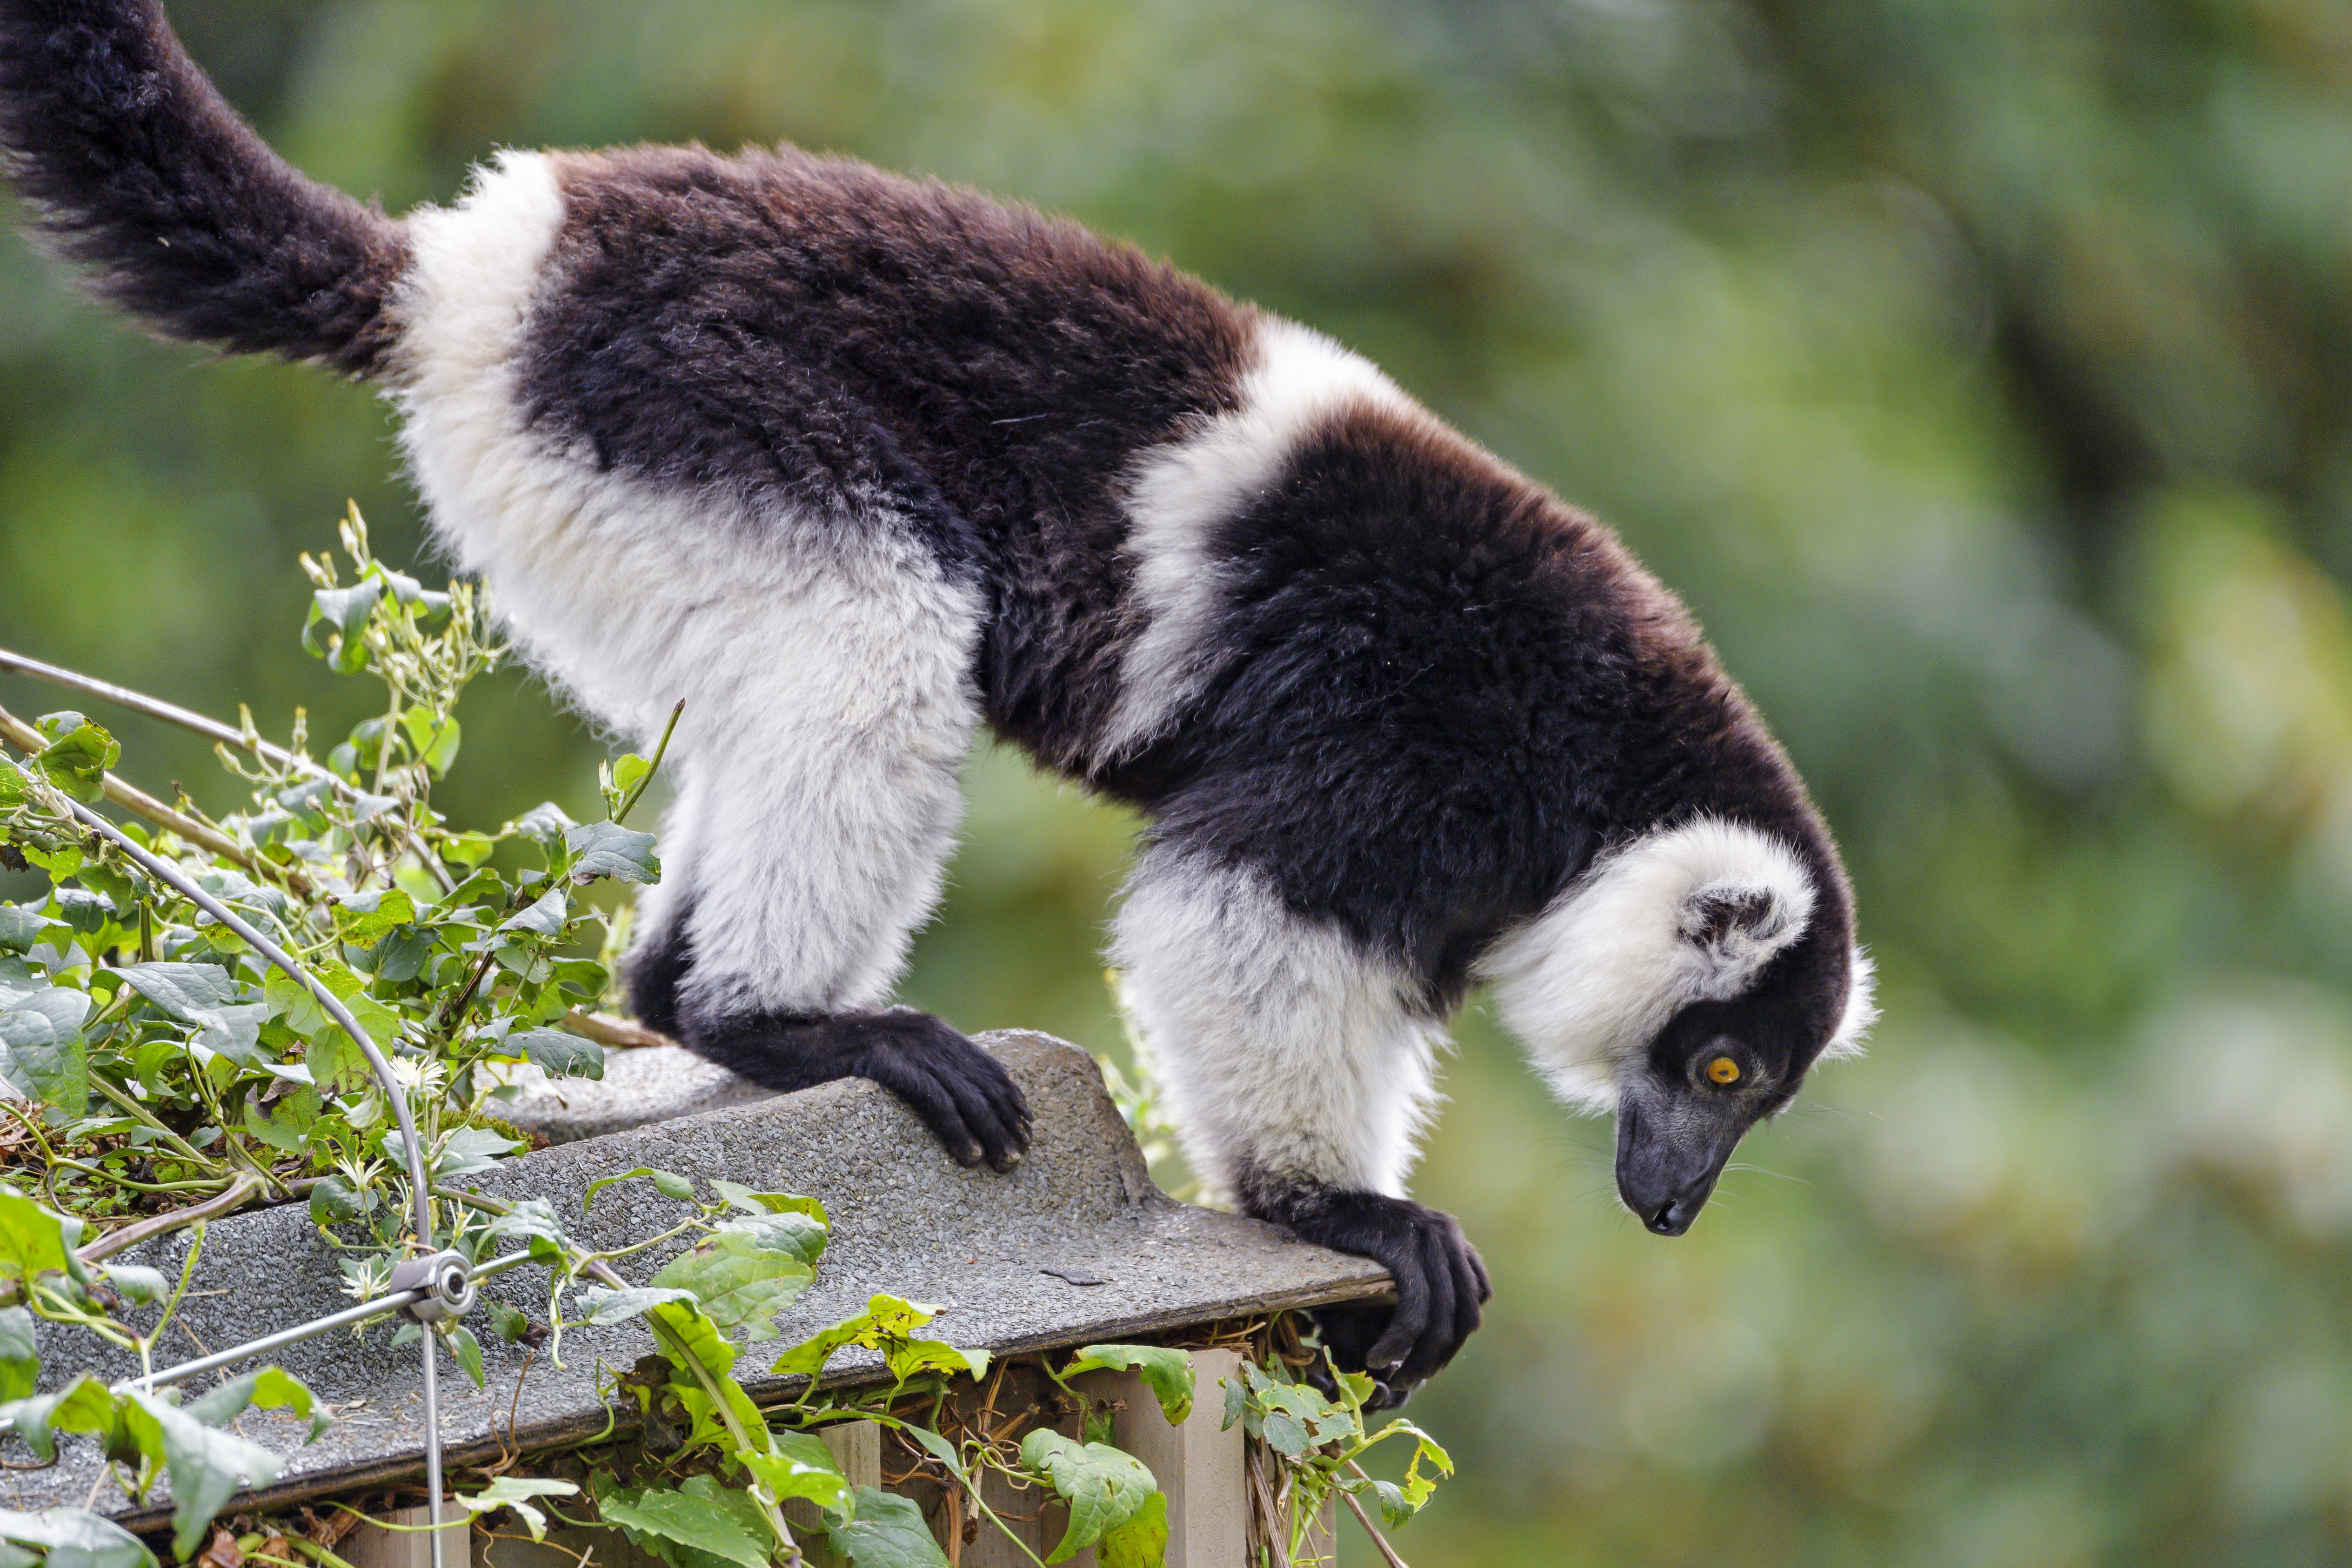 92503 download wallpaper Animals, Lemur, Animal, Profile, Sight, Opinion screensavers and pictures for free